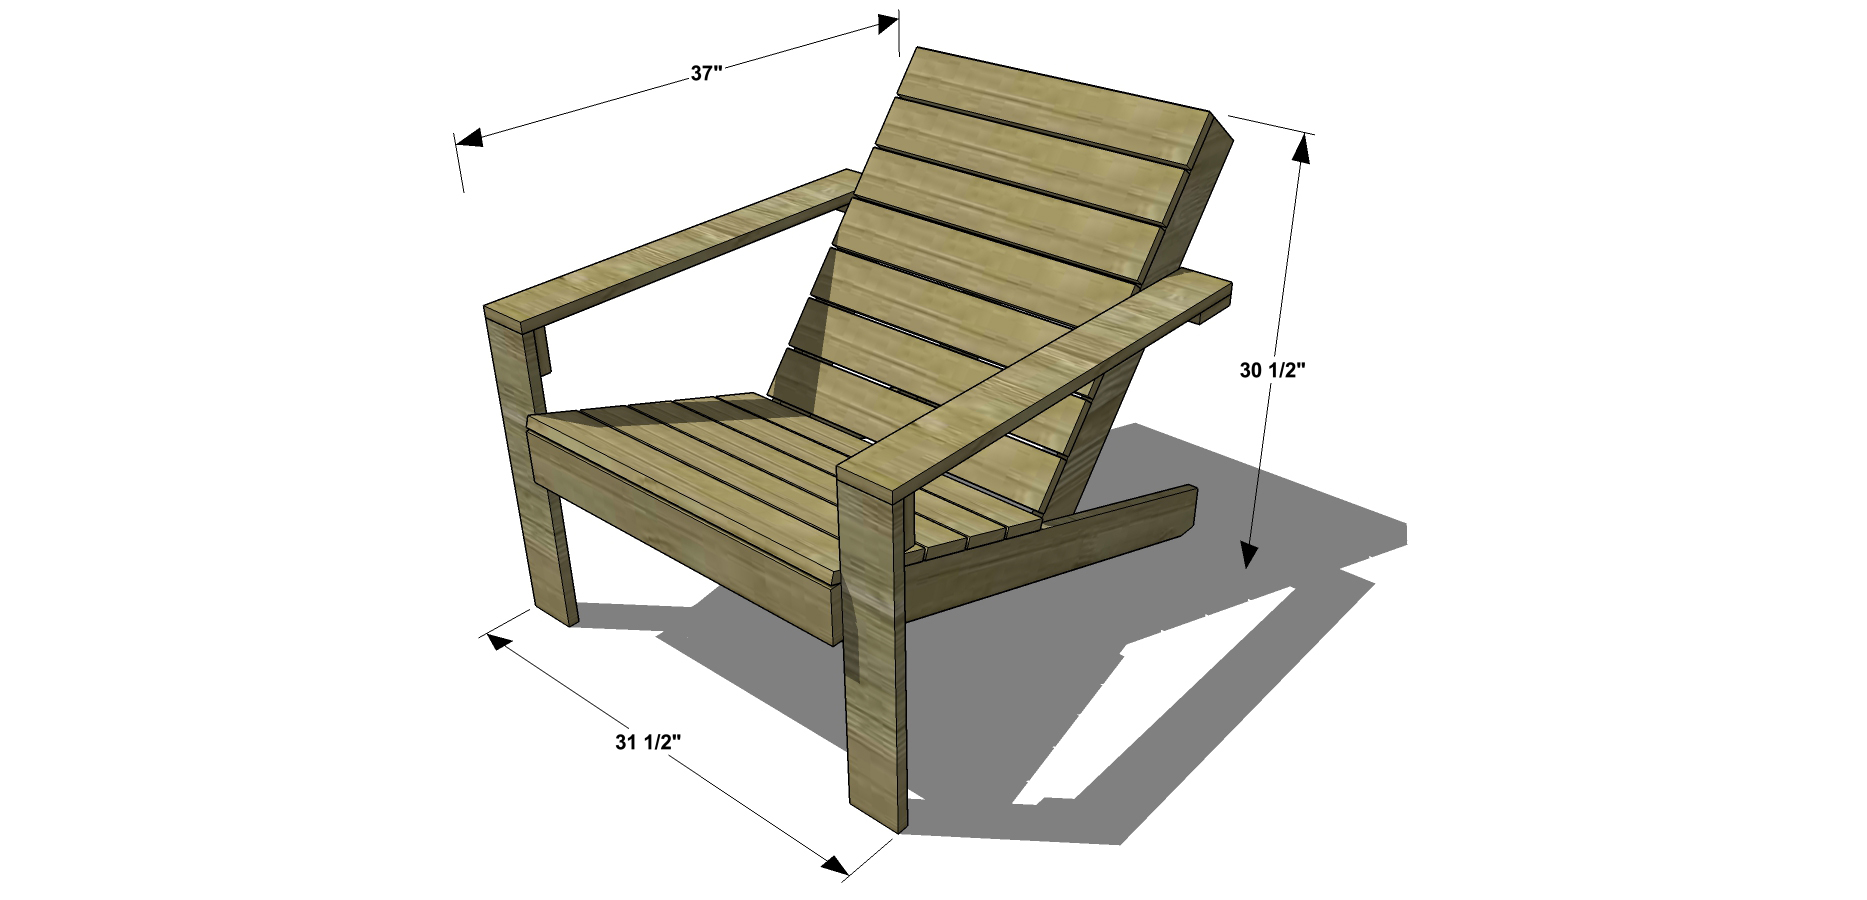 adirondack chair plan pride riser recliner free diy furniture plans how to build an outdoor modern